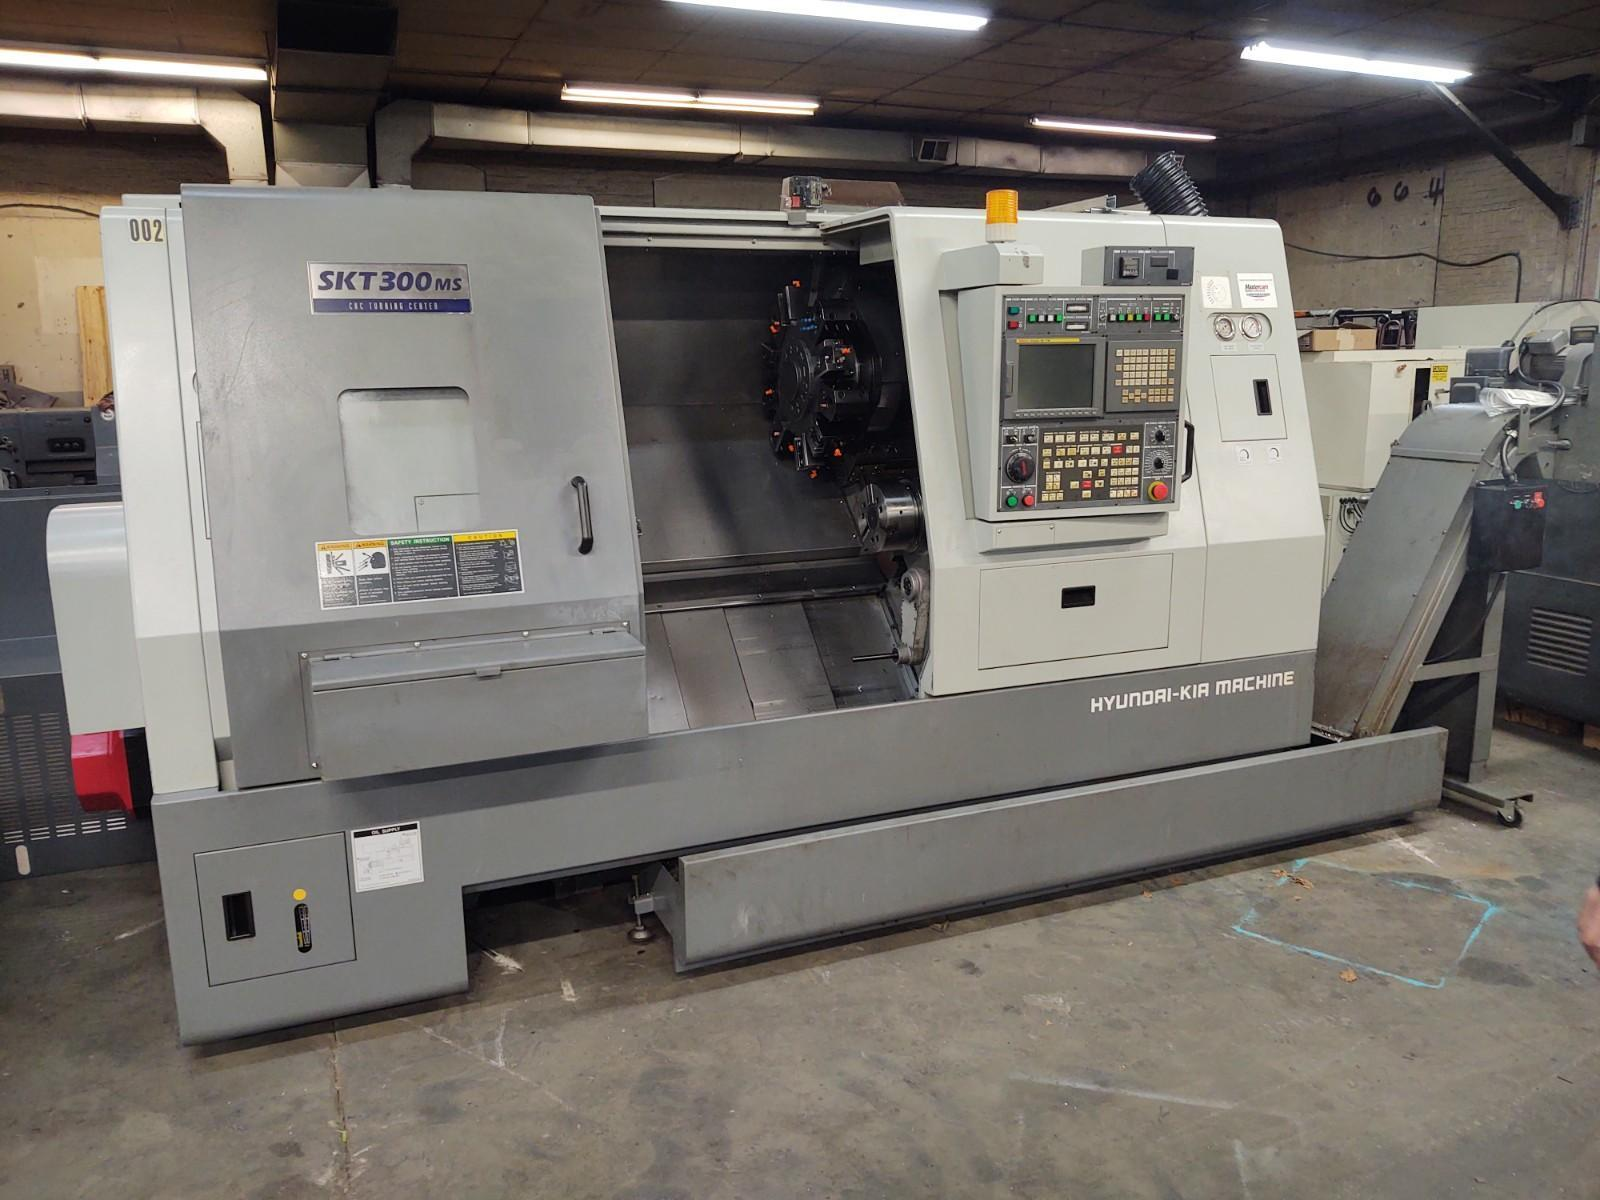 Hyundai Kia SKT300MS CNC Lathe, Fanuc 18iT, 12